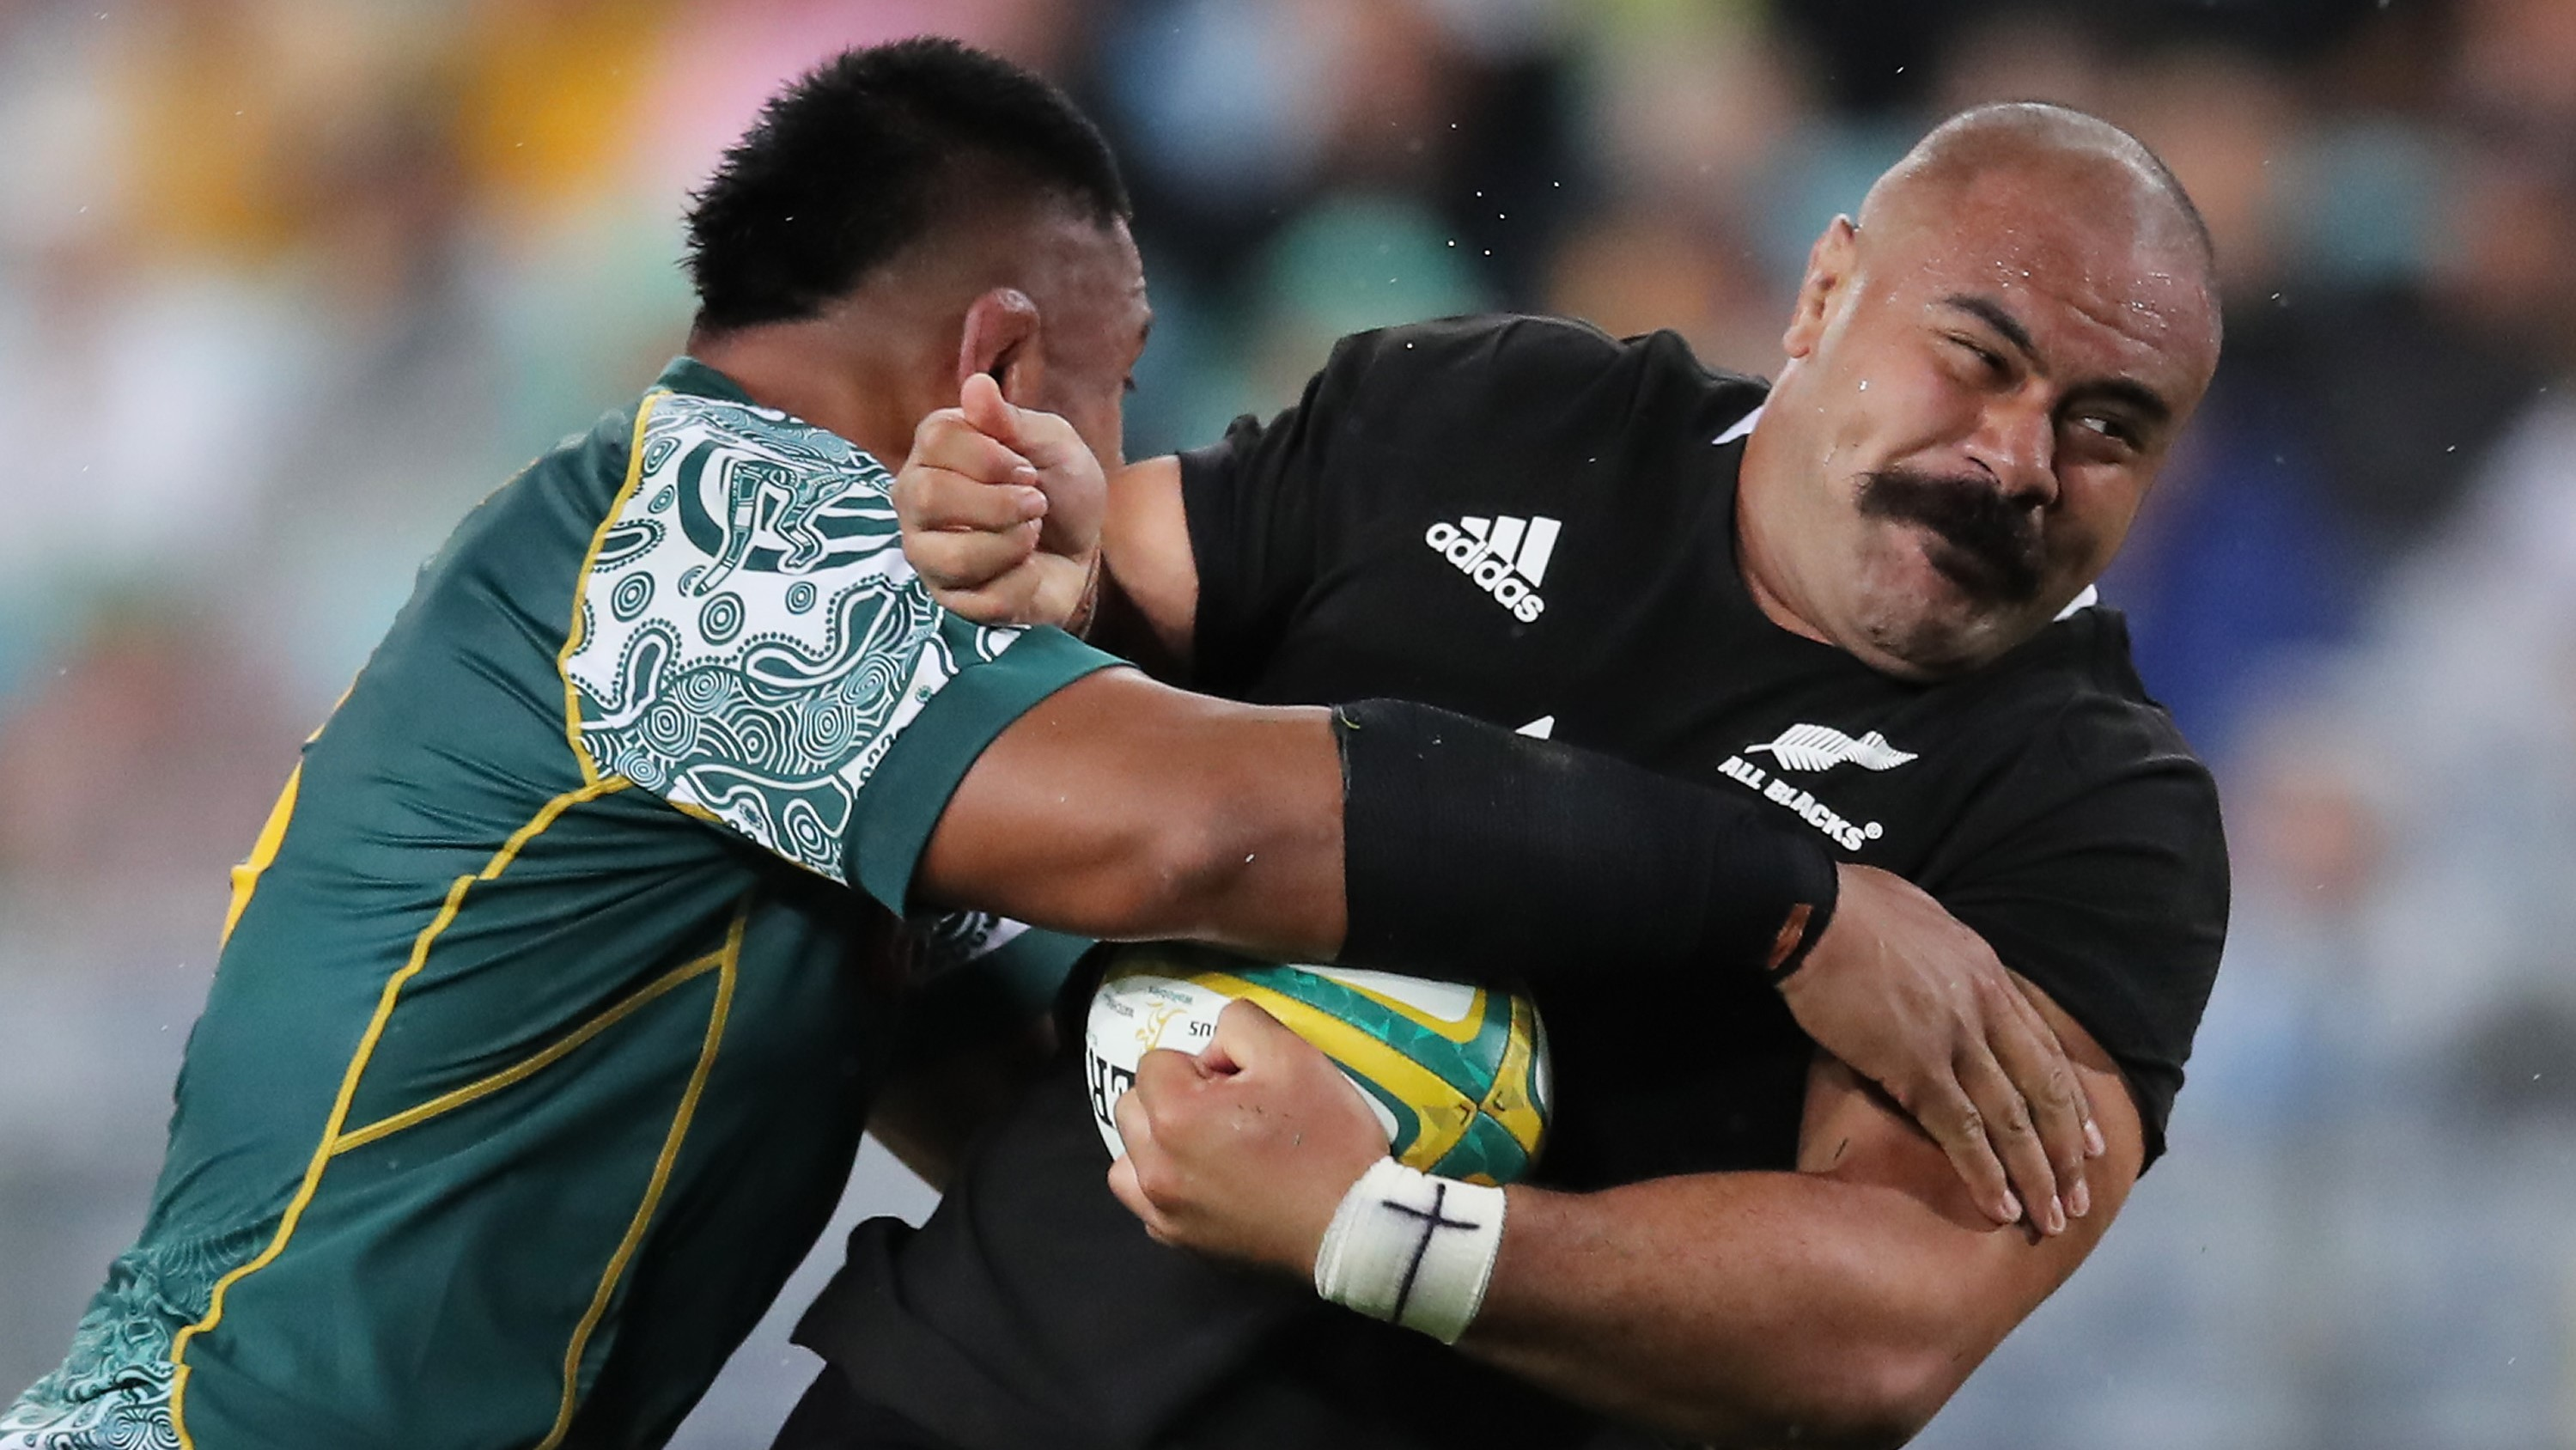 Australia Vs New Zealand Live Stream Watch Free Tri Nations Rugby From Anywhere Now Techradar Sony six, sony ten 1 and sony ten 2 are the channels which will live broadcast the odi, t20i and test series while sony liv will live stream the matches. https www techradar com news australia vs new zealand live stream watch free tri nations 2020 rugby from anywhere